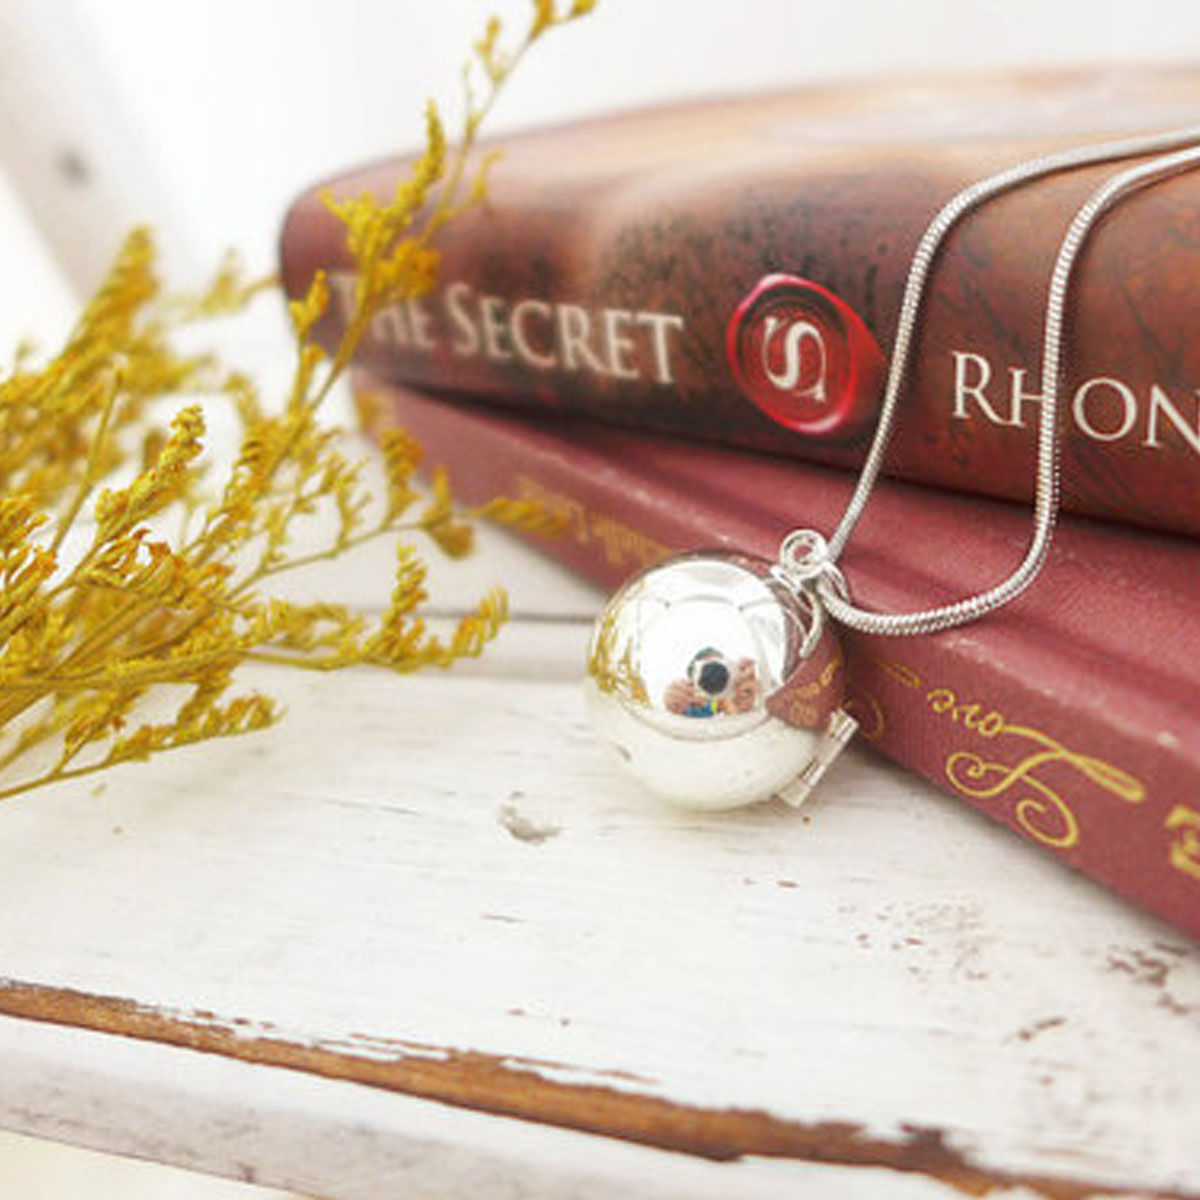 locket secret ball rachel lockets candidate necklace by wren message original product